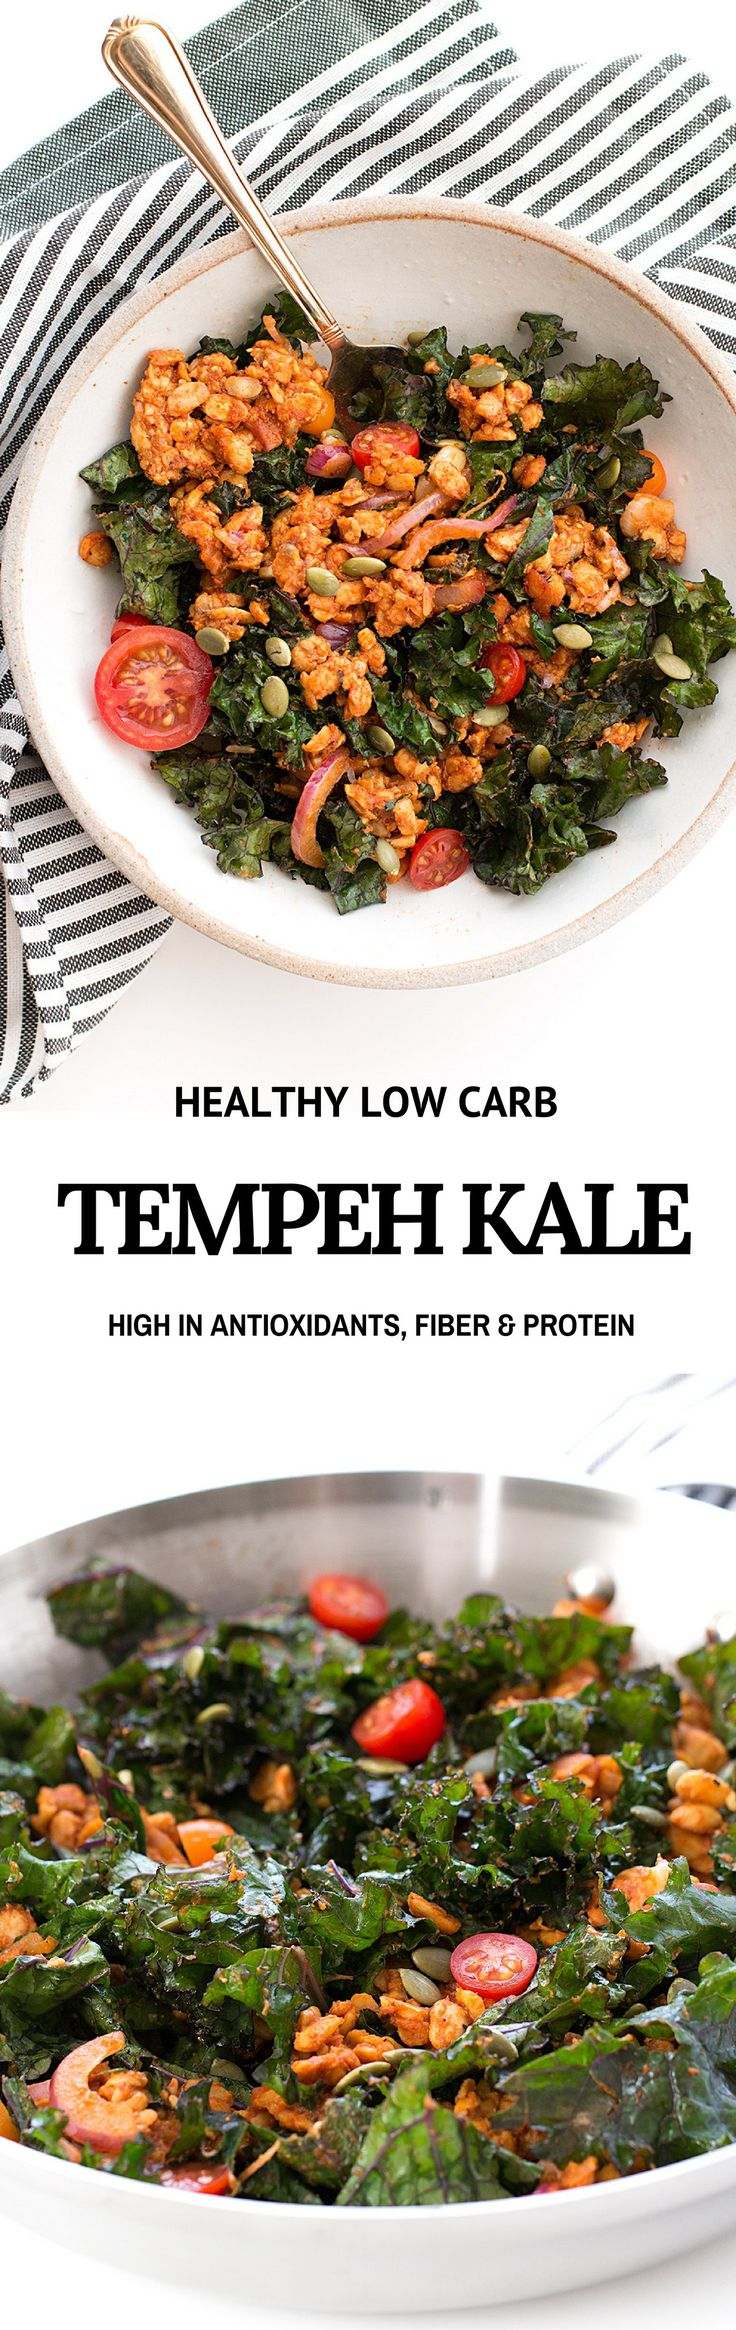 Sti Fry Tempeh. Tempeh is one of the best soy products and is a tradition Asian…